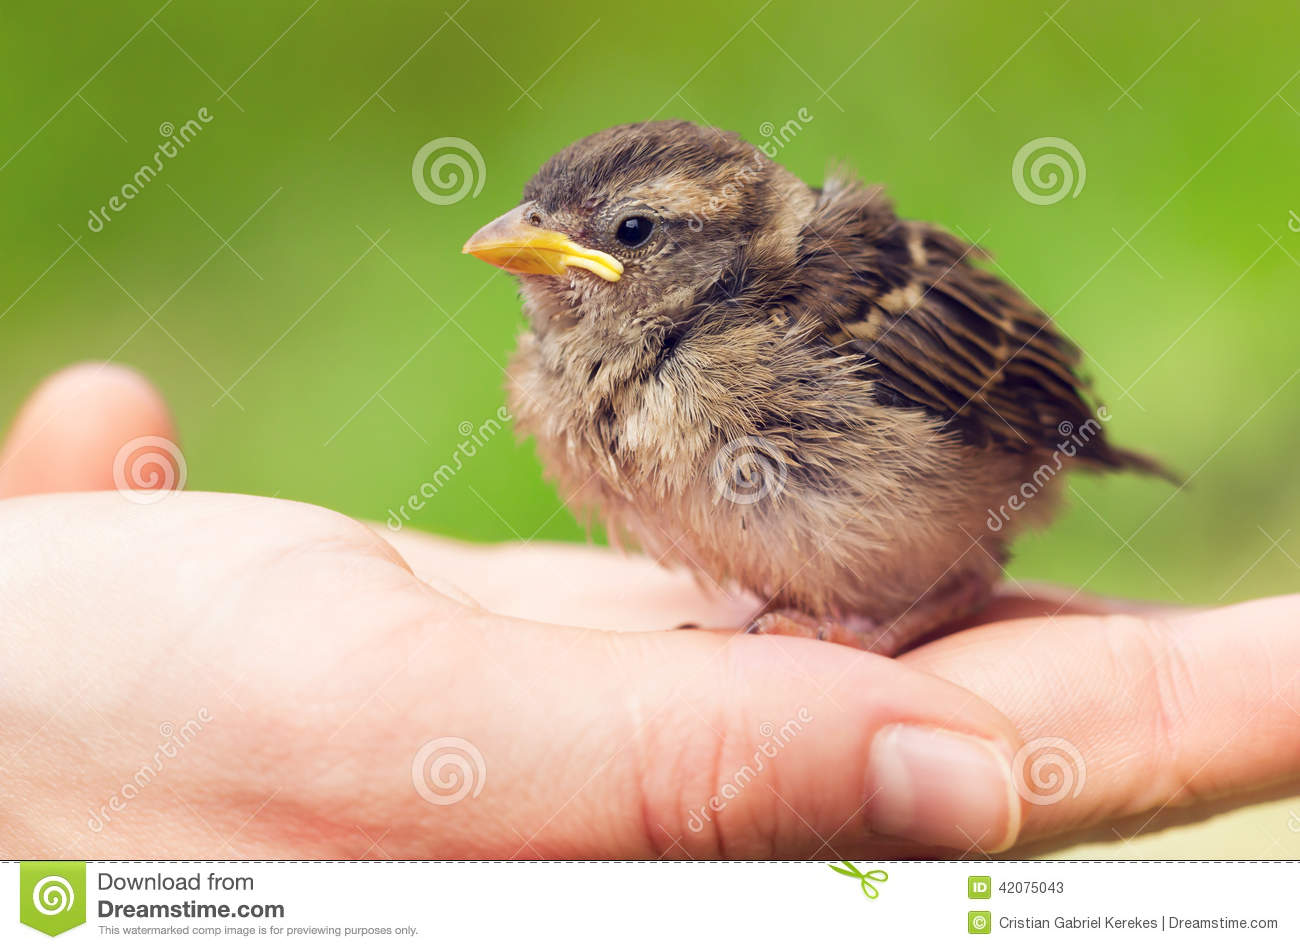 Stock Photo Cute Baby Sparrow Hand Sitting Against Green Background Im...